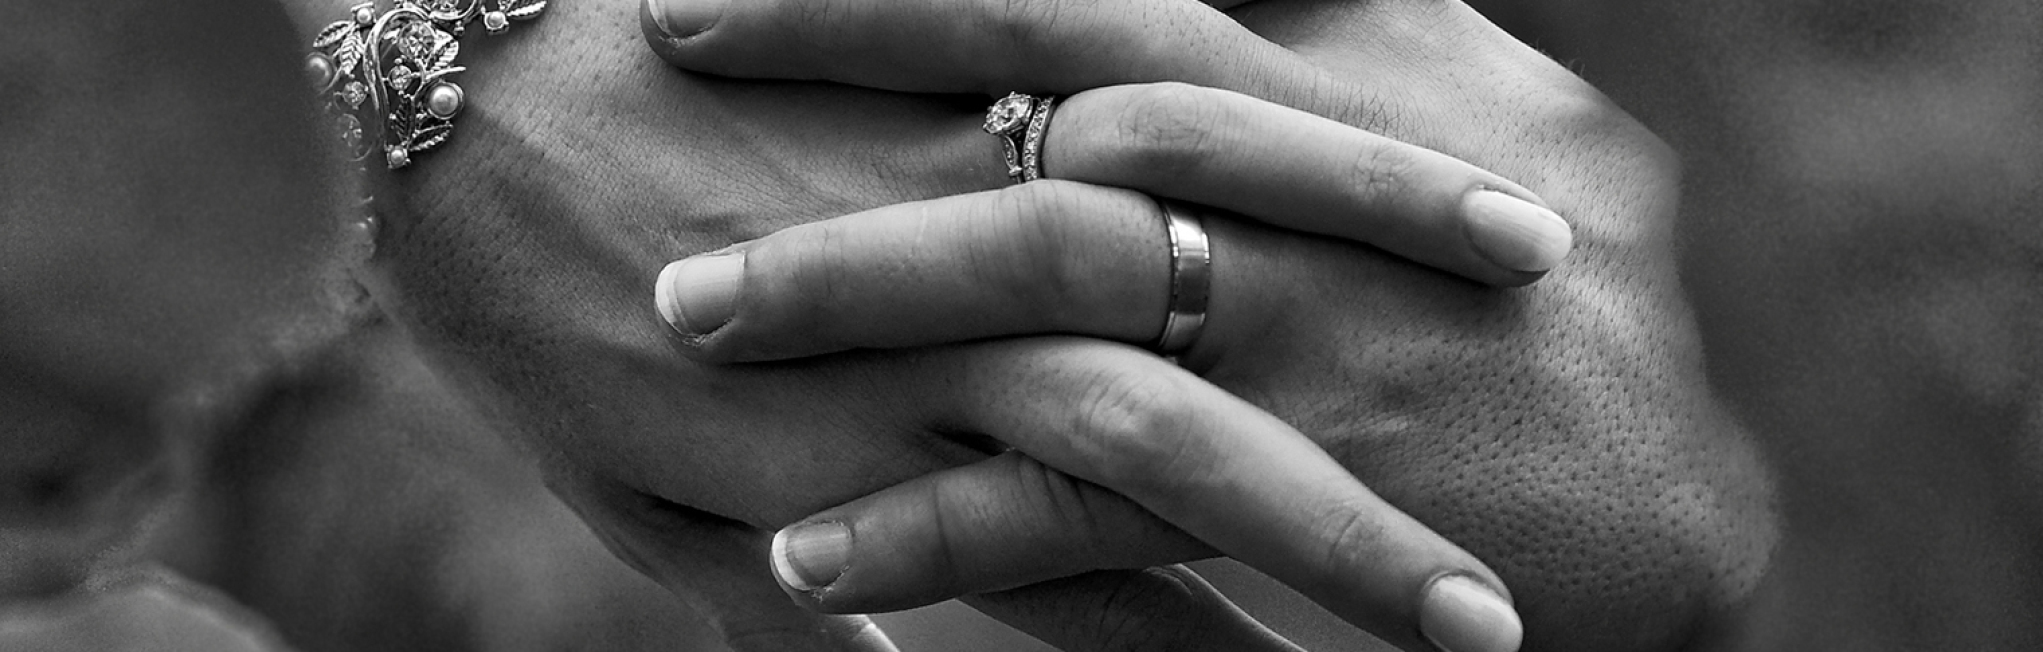 close up of bride & groom holding hands showing wedding rings in black & white